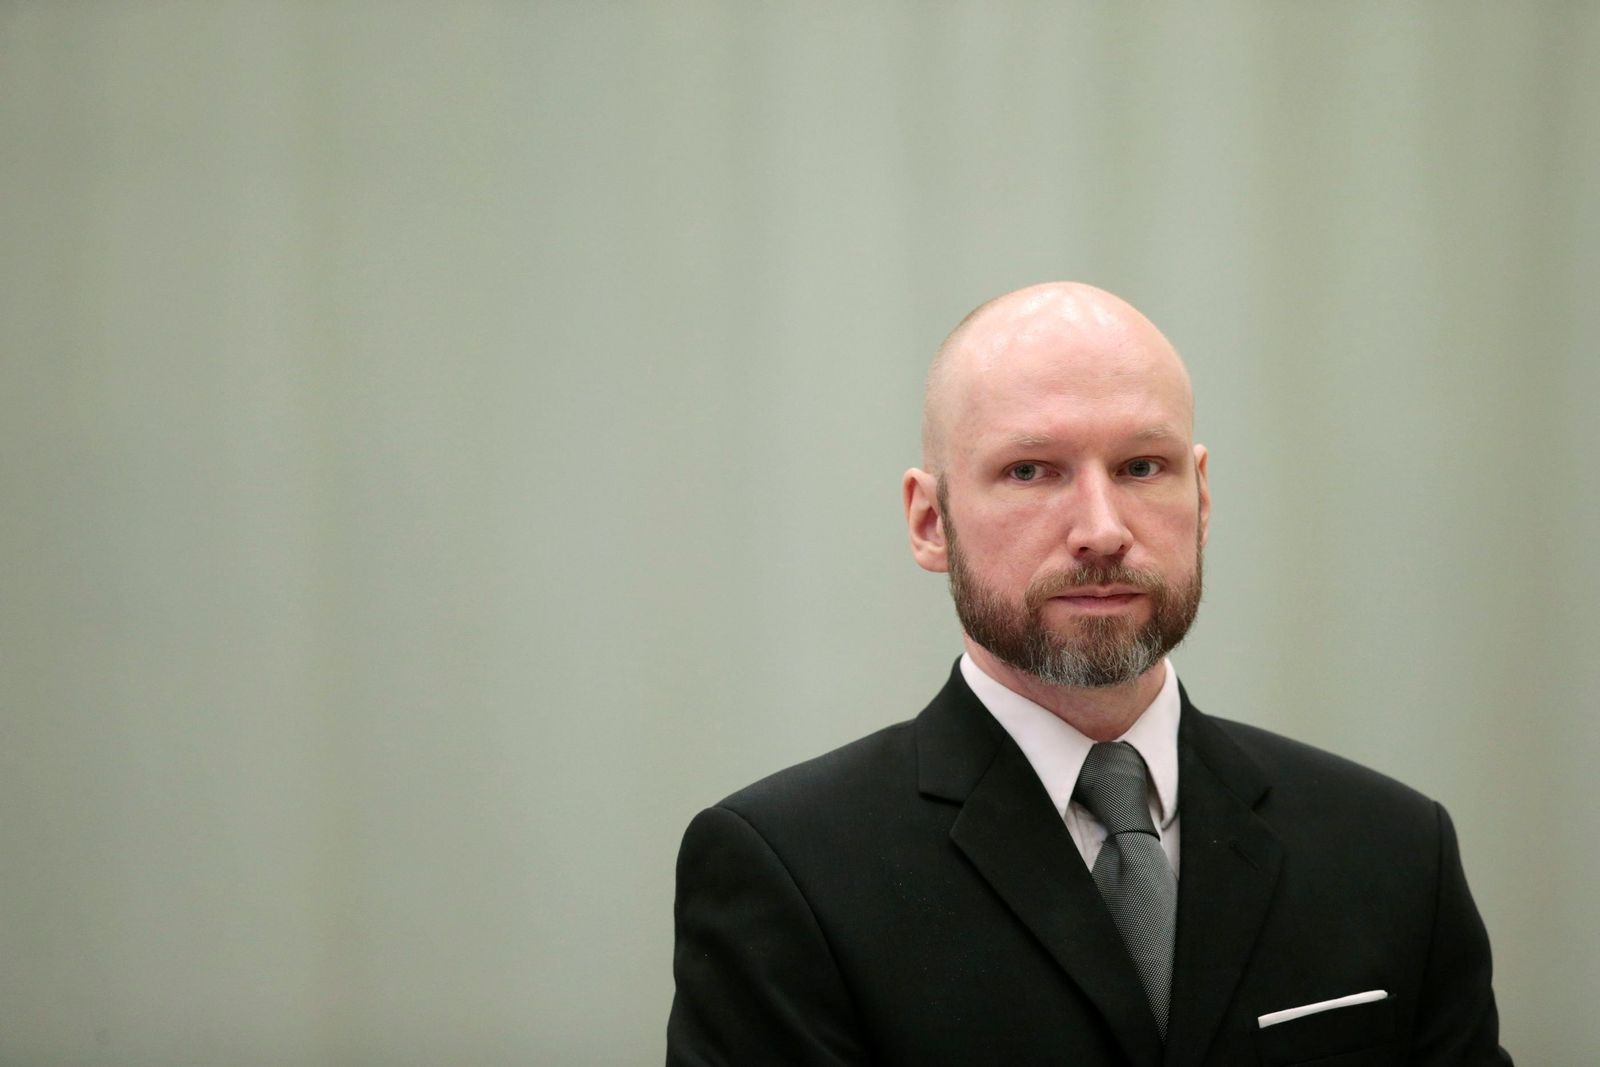 NORWAY-BREIVIK/